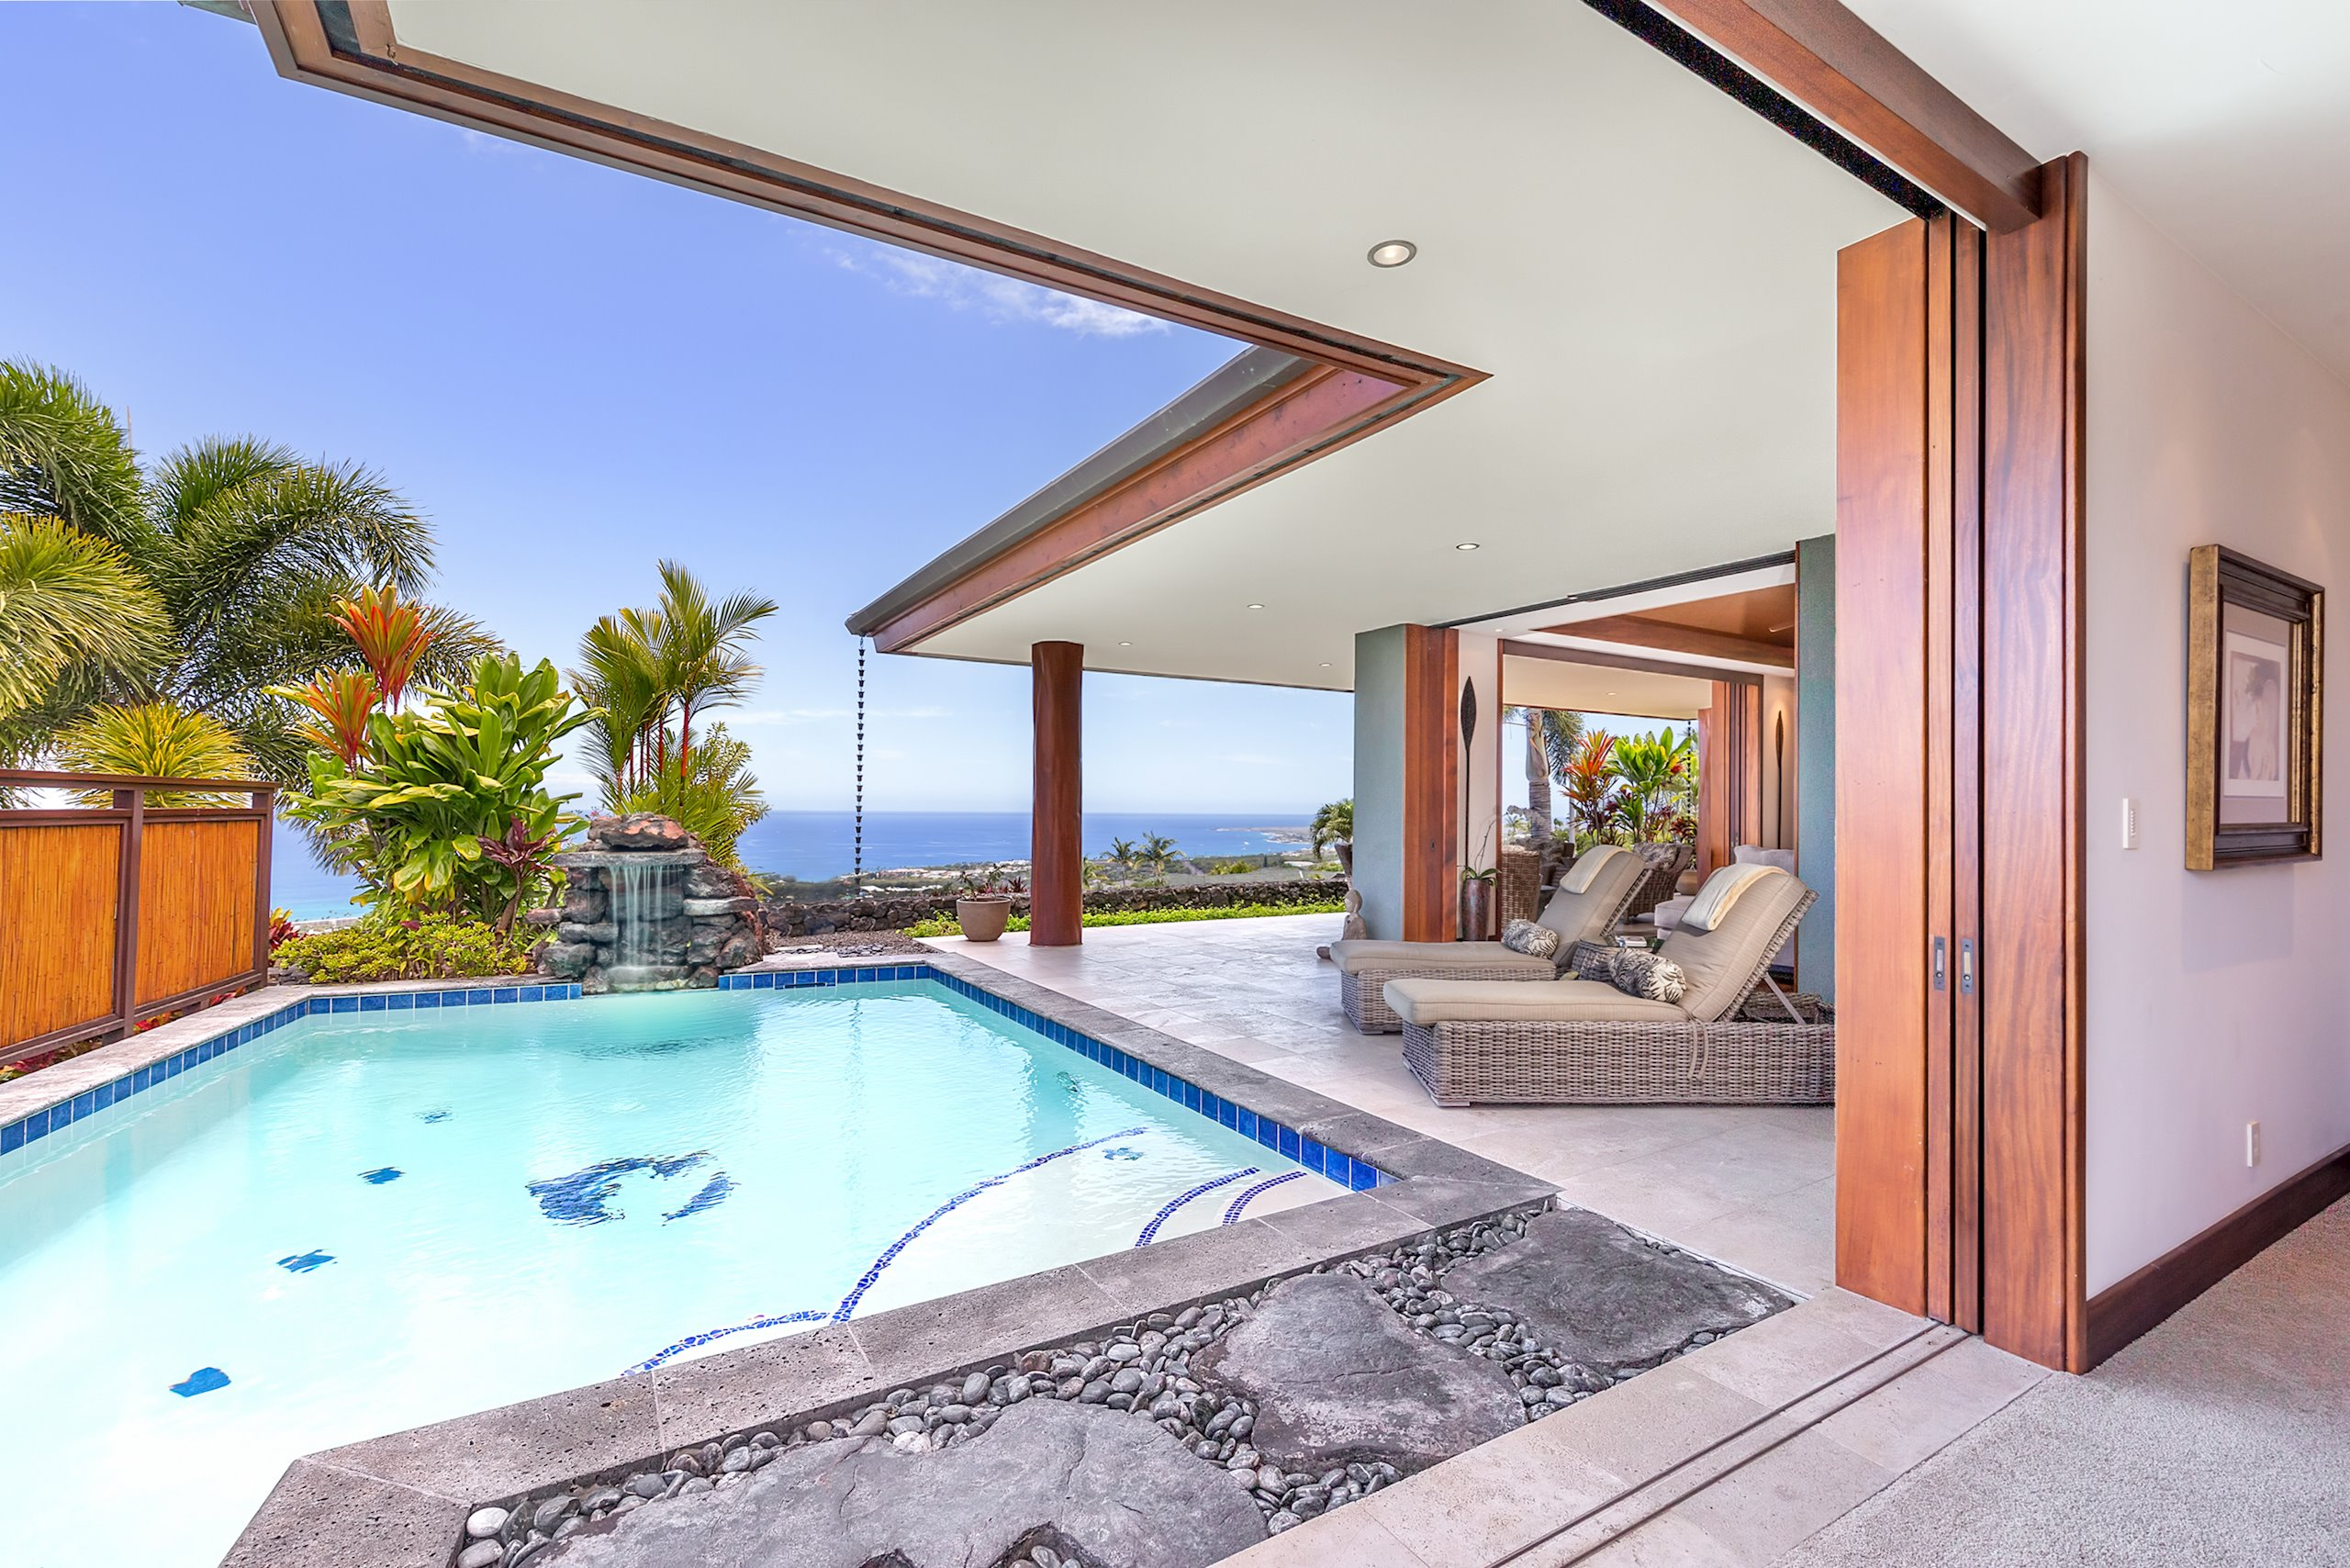 "STUNNING CRAFTSMANSHIP AND SYMMETRY IN THIS EXTRAORDINARY LUXURY KONA HOME<br><br>Situated on a picturesque lot in the prestigious Kona Vistas neighborhood in Kailua-Kona, this one-of-a-kind luxury estate home boasts incredible architectural details, not to mention one of the best 180-degree ocean views in Kona. Showcasing dramatic geometric angles and a very striking floor plan this home shines like a jewel with impeccable Hawaiian accents and exquisite interiors throughout. <br><br>This eye-catching masterpiece was designed to impress even the most discerning buyer. As you step into this gorgeous home, the open-air foyer brings the outside in, accented by stately 'ohia post and glass cathedral prism skylights. Noticeable Feng Shui in the entrance with double etched glass doors welcomes you in. <br><br>The property's surrounding landscape and spacious lanais bring an aesthetic contrast with Mahogany cornerless pocket doors combine to create a peaceful enclave that provides private, abundant indoor-outdoor island living space suitable for extravagant soirées or for enjoying quiet sunsets and unobstructed ocean views with family and friends.<br><br>This EPIC Home features two identical master suites each with expansive loft bonus space for many different uses, both flaunting incredible tranquil spa-like bathrooms with private outdoor showers. Perfect for entertaining, the gourmet kitchen is beyond impeccable, you immediately take notice of beautiful Monkeypod cabinets, locally sourced, that complement the Cactus Borealis granite slab and top-of-the-line appliances.   Unique separate guest quarters include 1 bedroom, 1 full bath, kitchenette and media room which offers ideal living space for extended stay guests or family members.<br><br>Swim laps in the resort-style saltwater pool with dolphin and turtle inlays and a cascading lava rock waterfall.  <br><br>Previously featured in the ""At Home"" magazine, this is one of the best homes on the market."